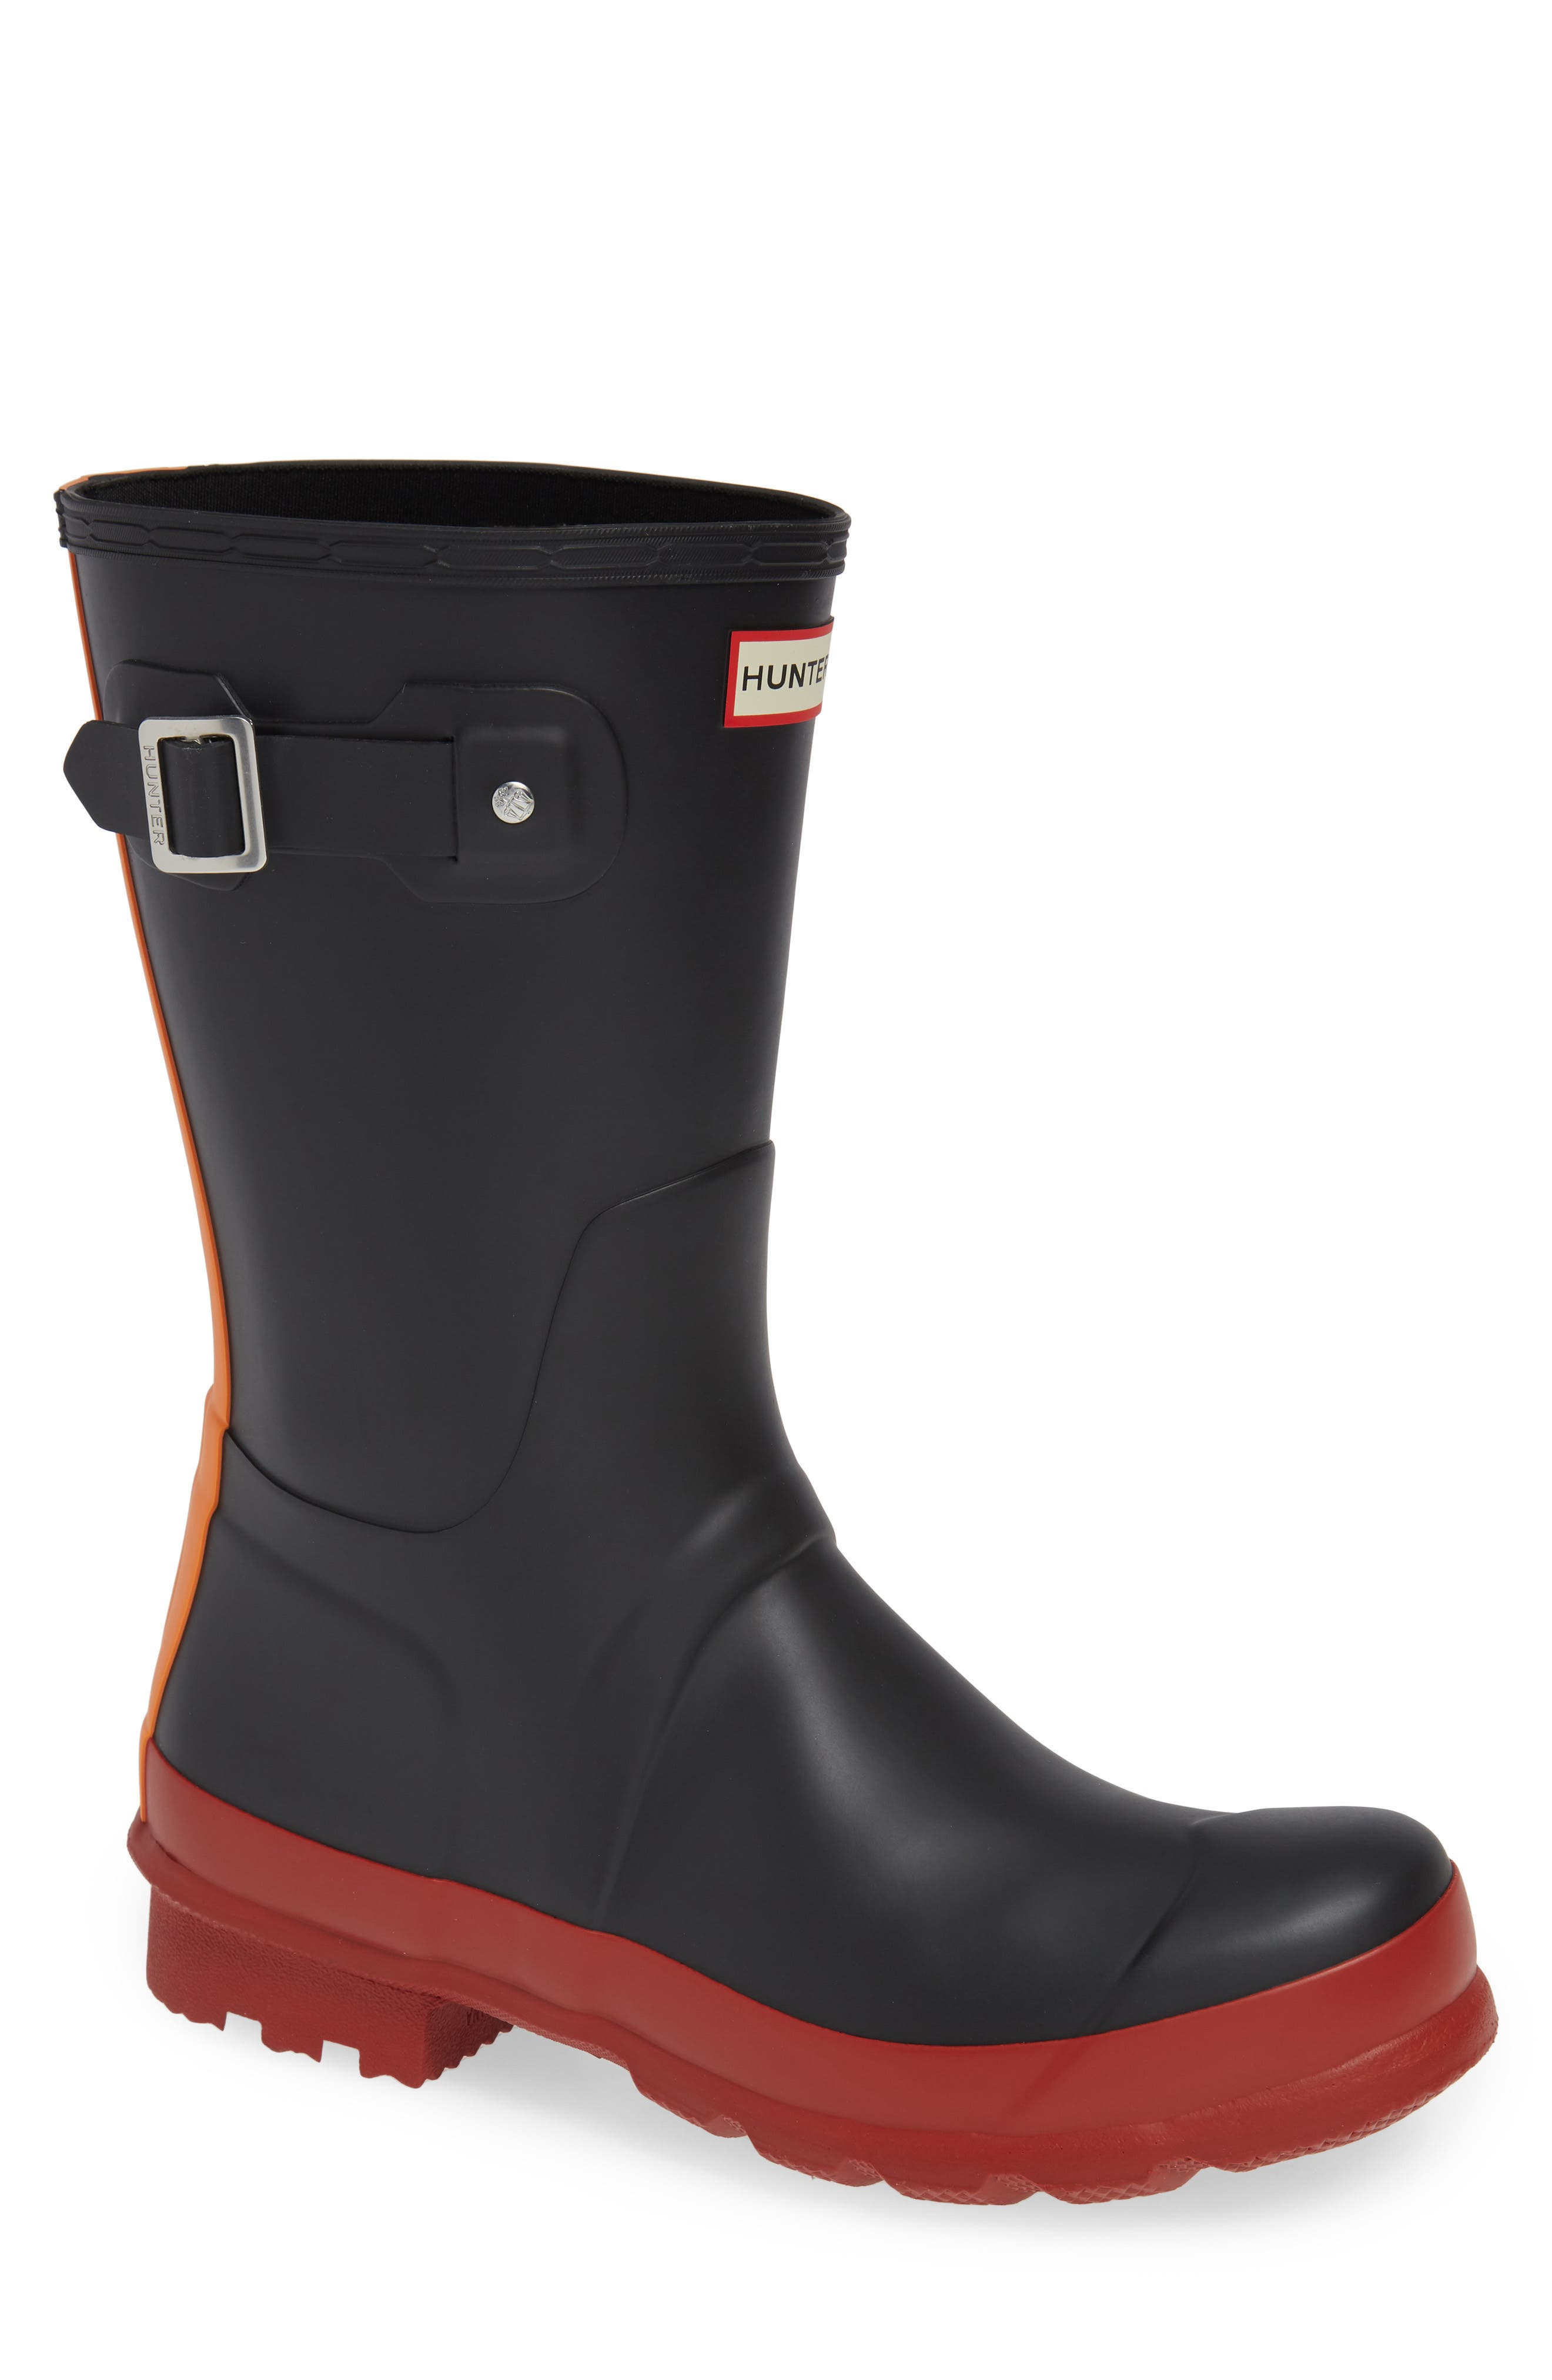 Waterproof Original Boot,                         Main,                         color, BLACK/ RED COLOR BLOCK